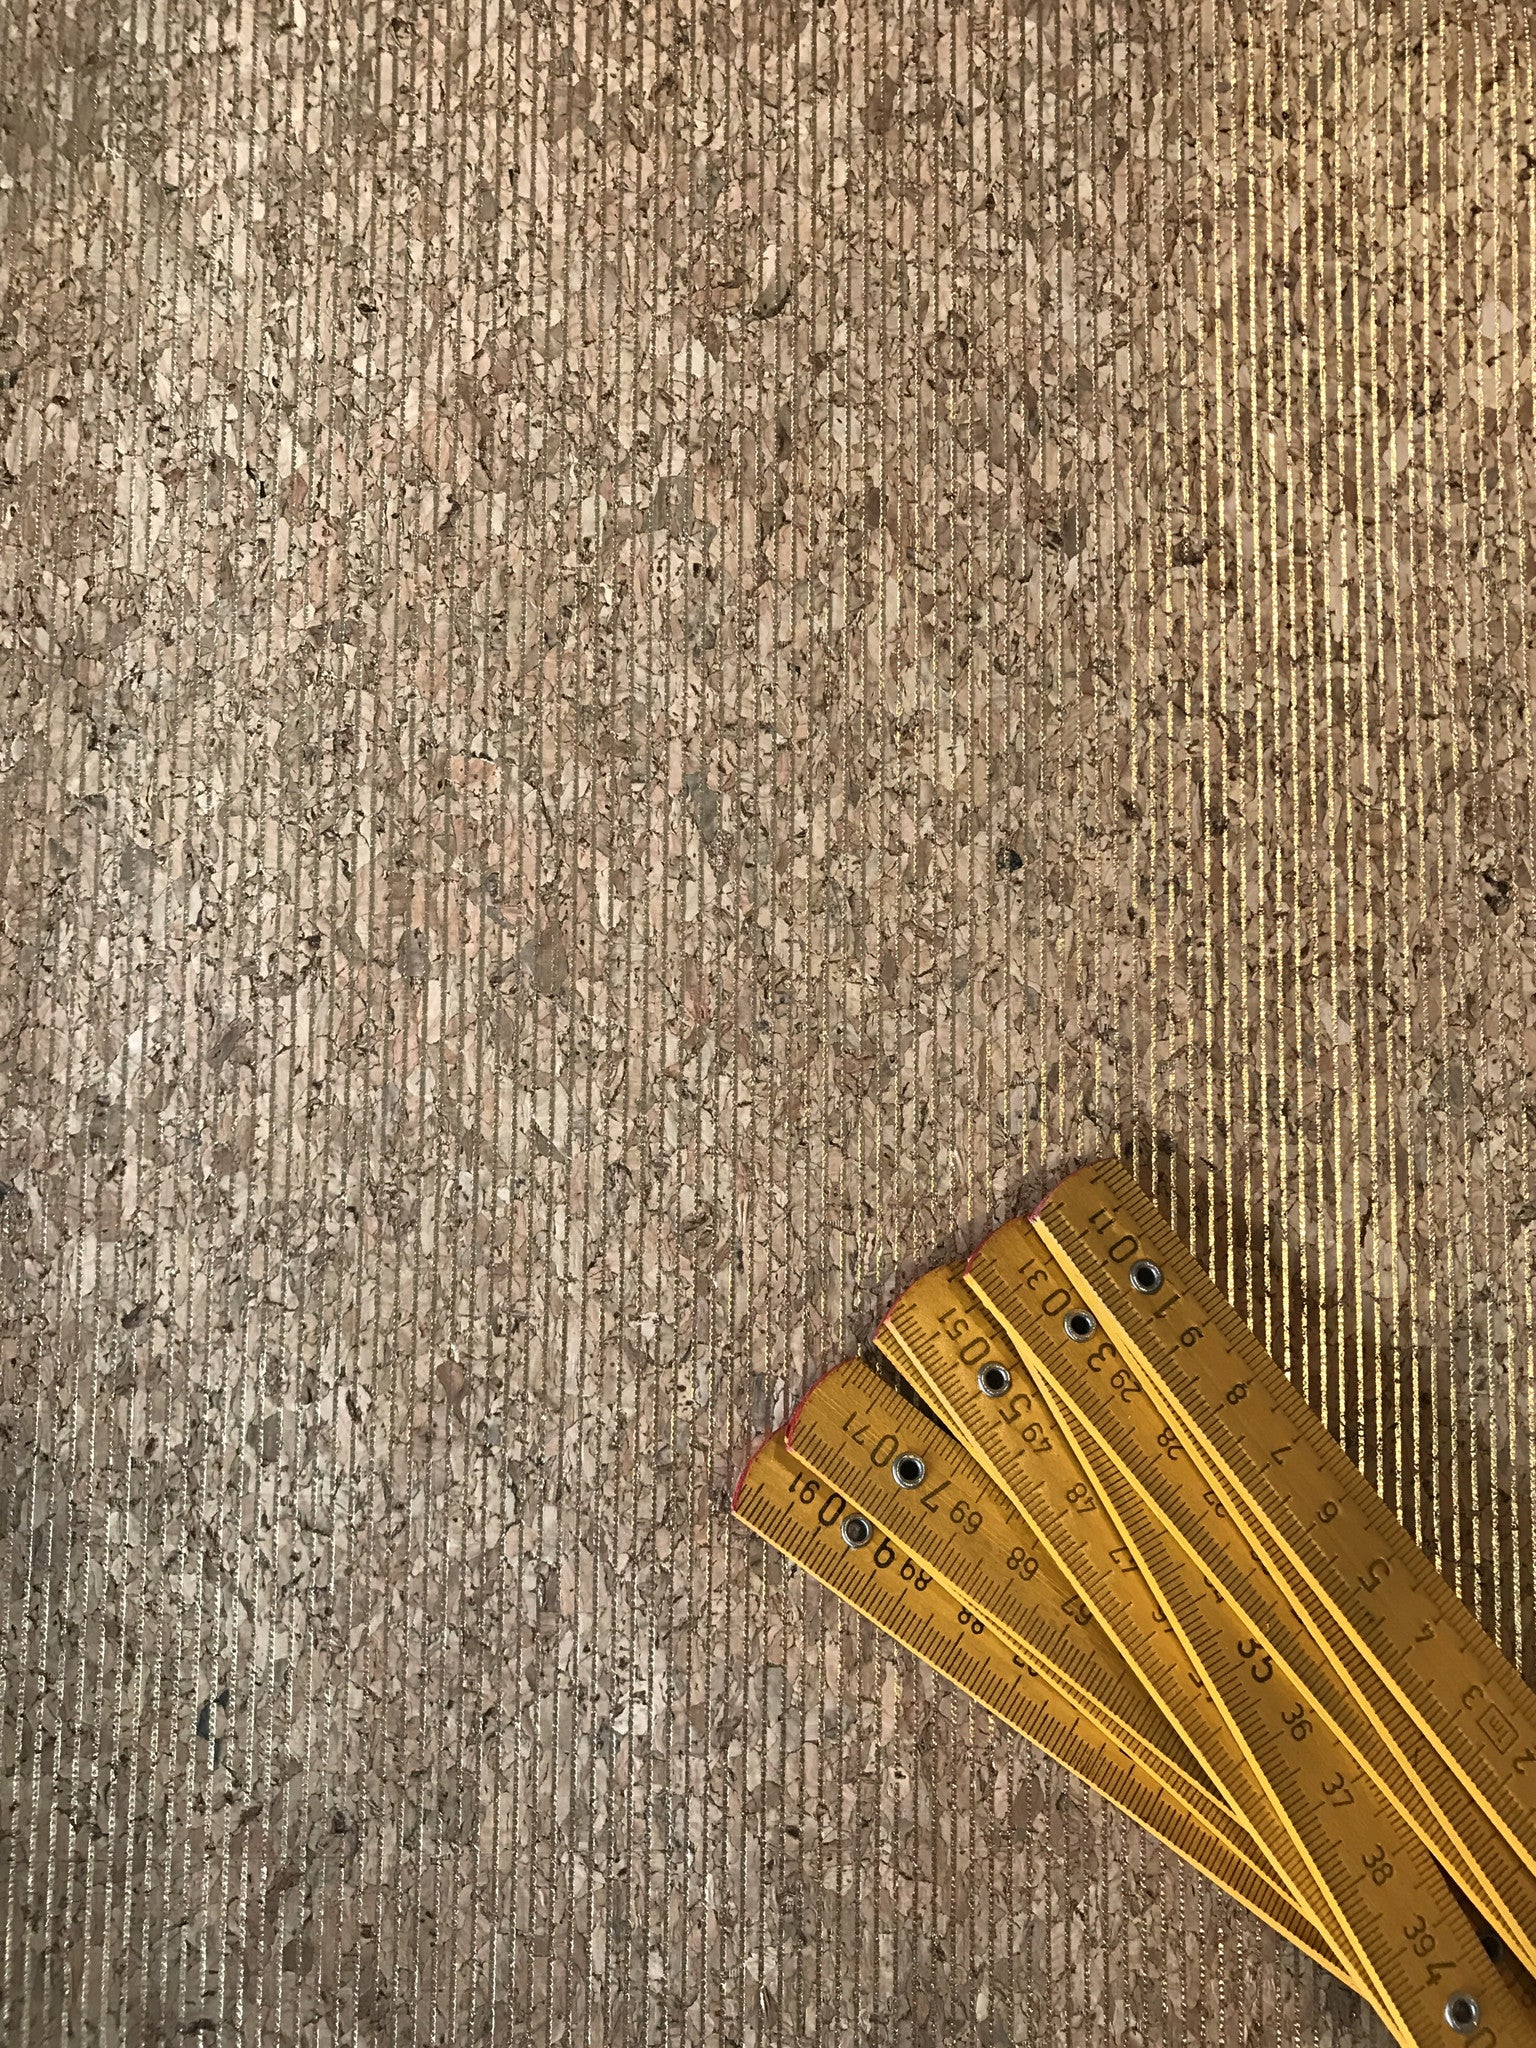 Cork Fabric/Leather - Gold Glare